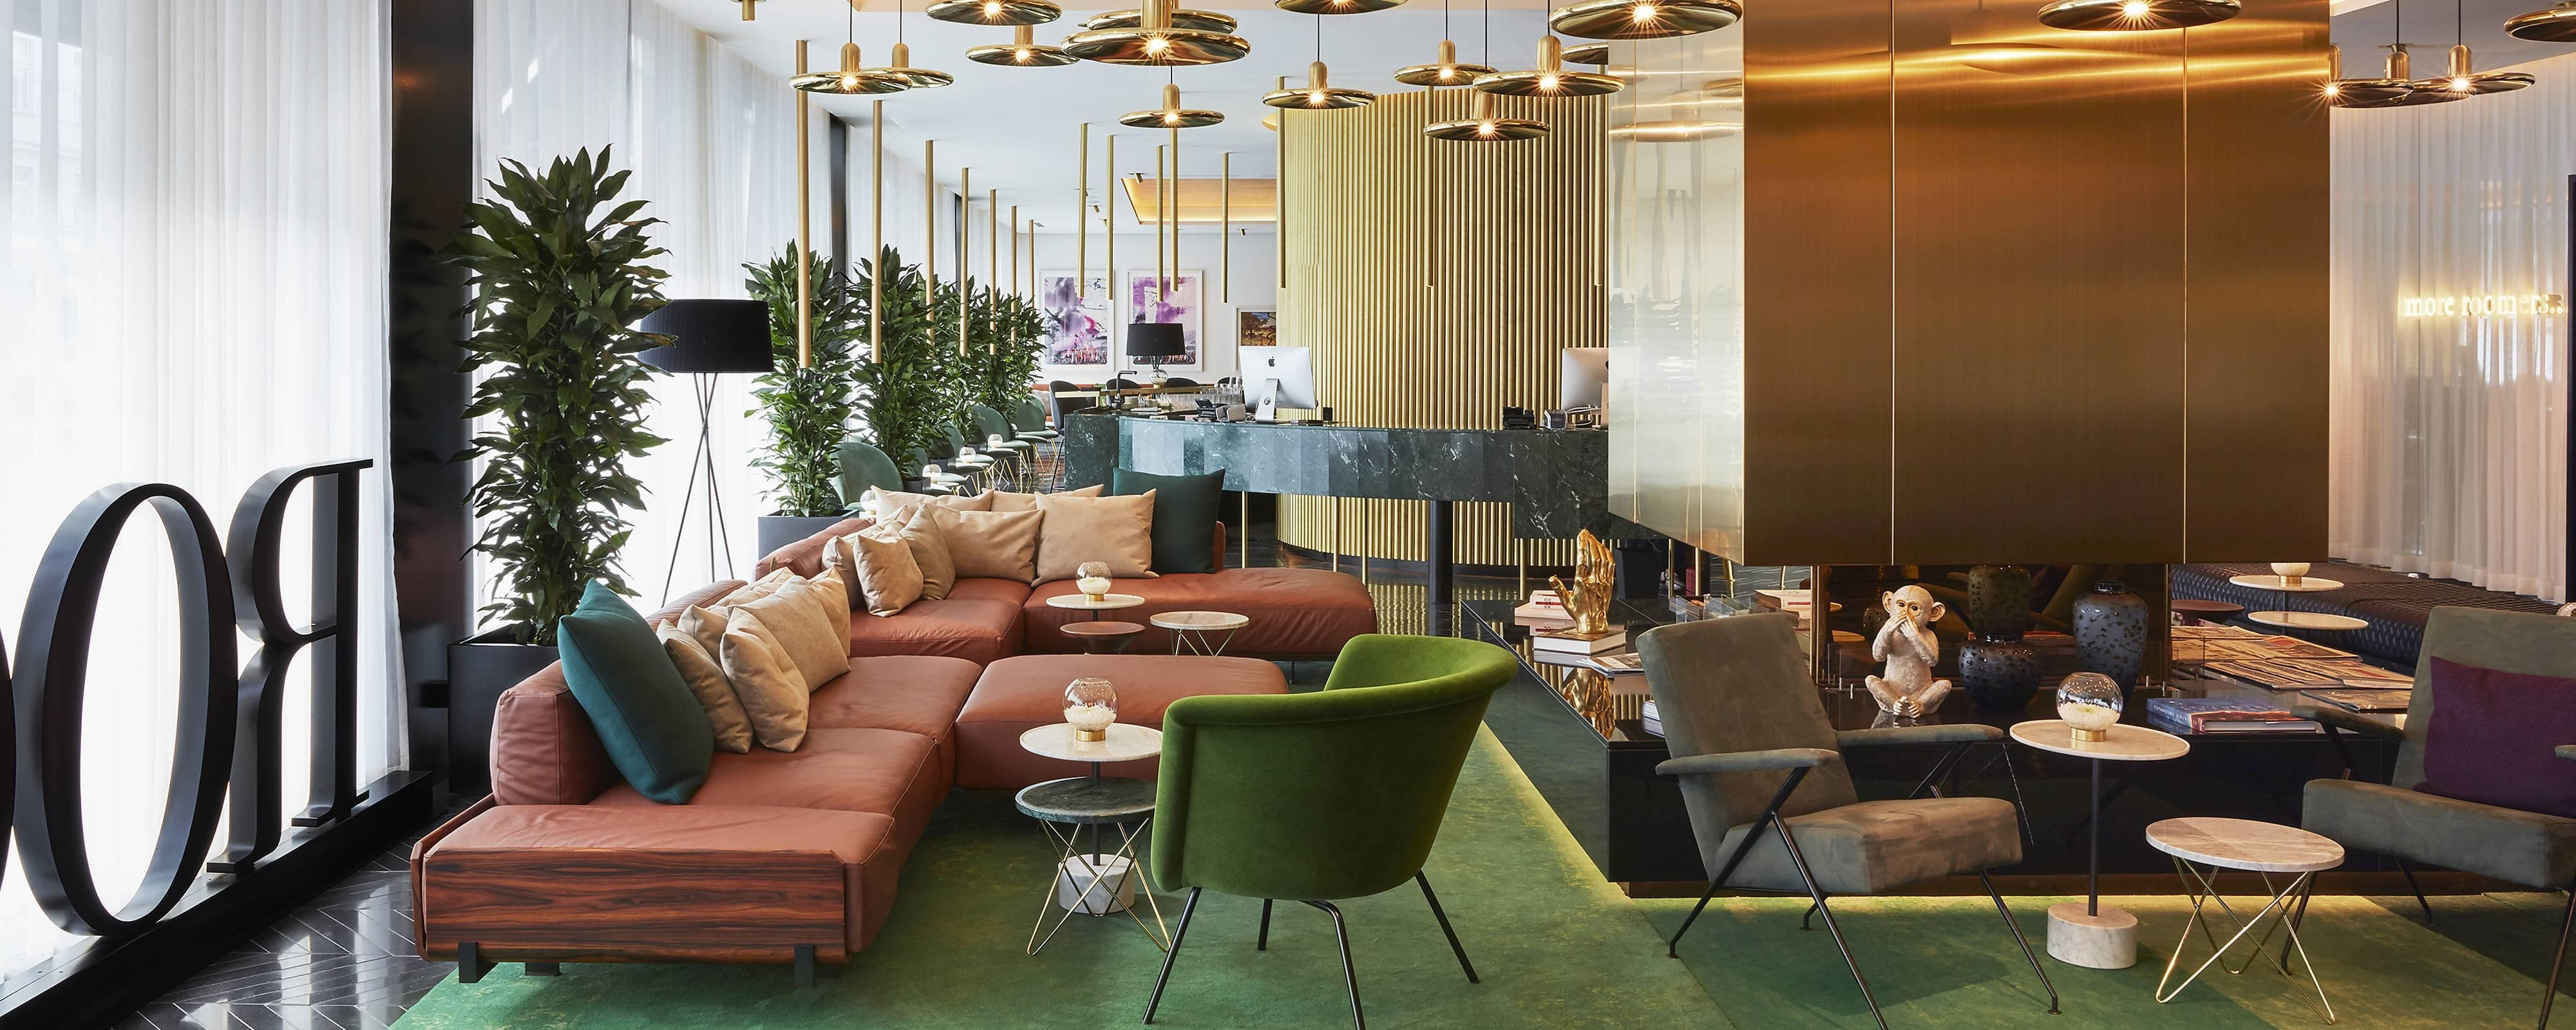 Boutique Luxury Hotel In Munich Autograph Collection